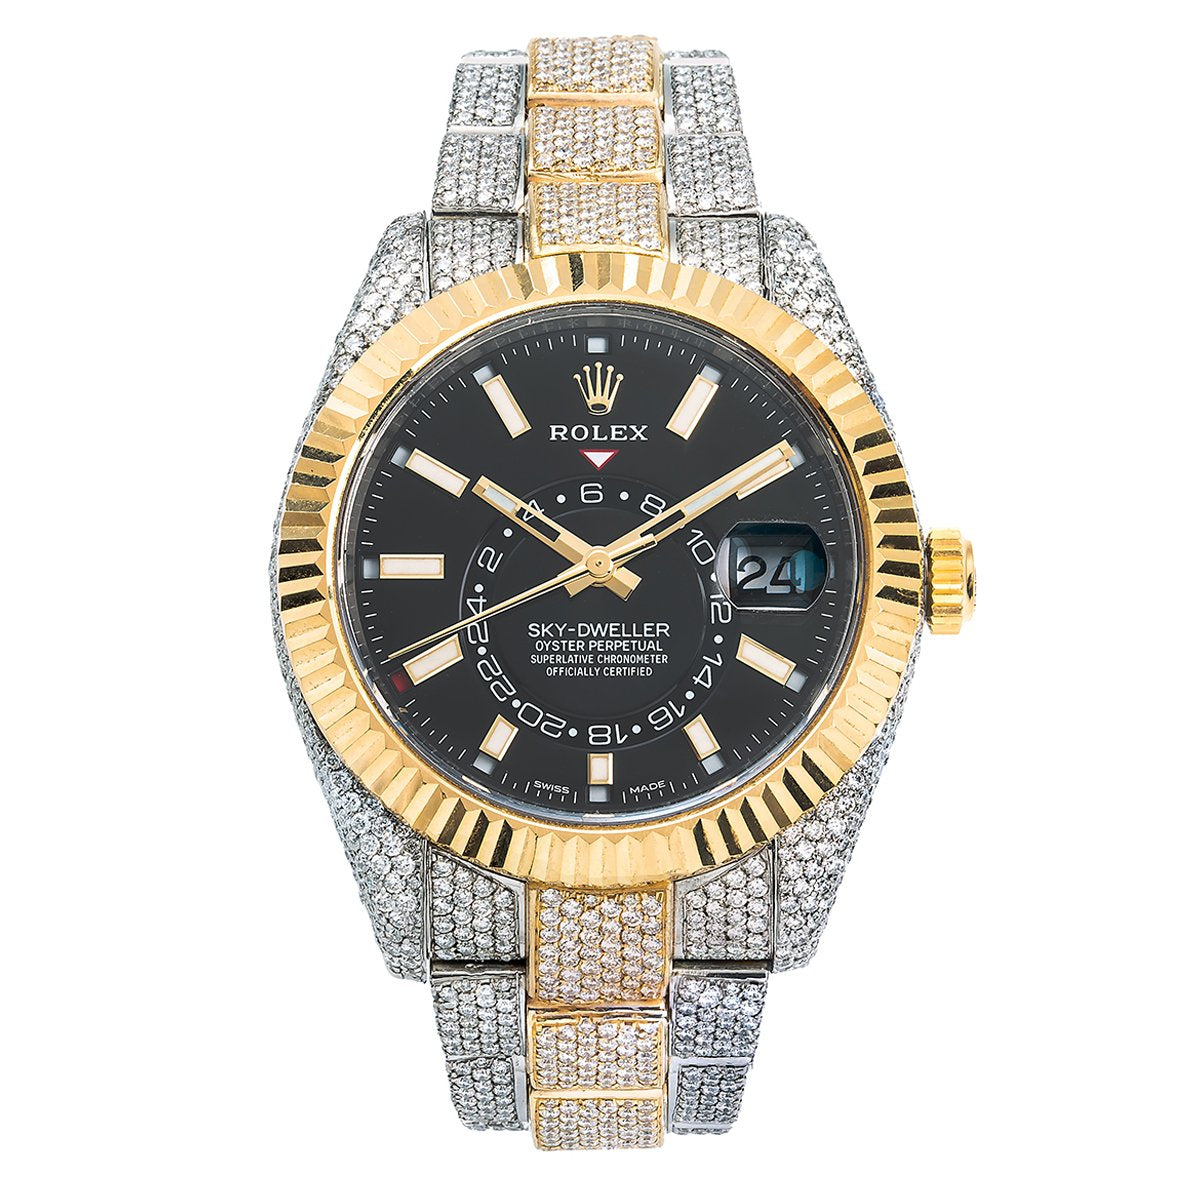 Rolex Sky-Dweller Diamond Watch, 326933 42mm, Black Dial with 21.5CT Diamonds